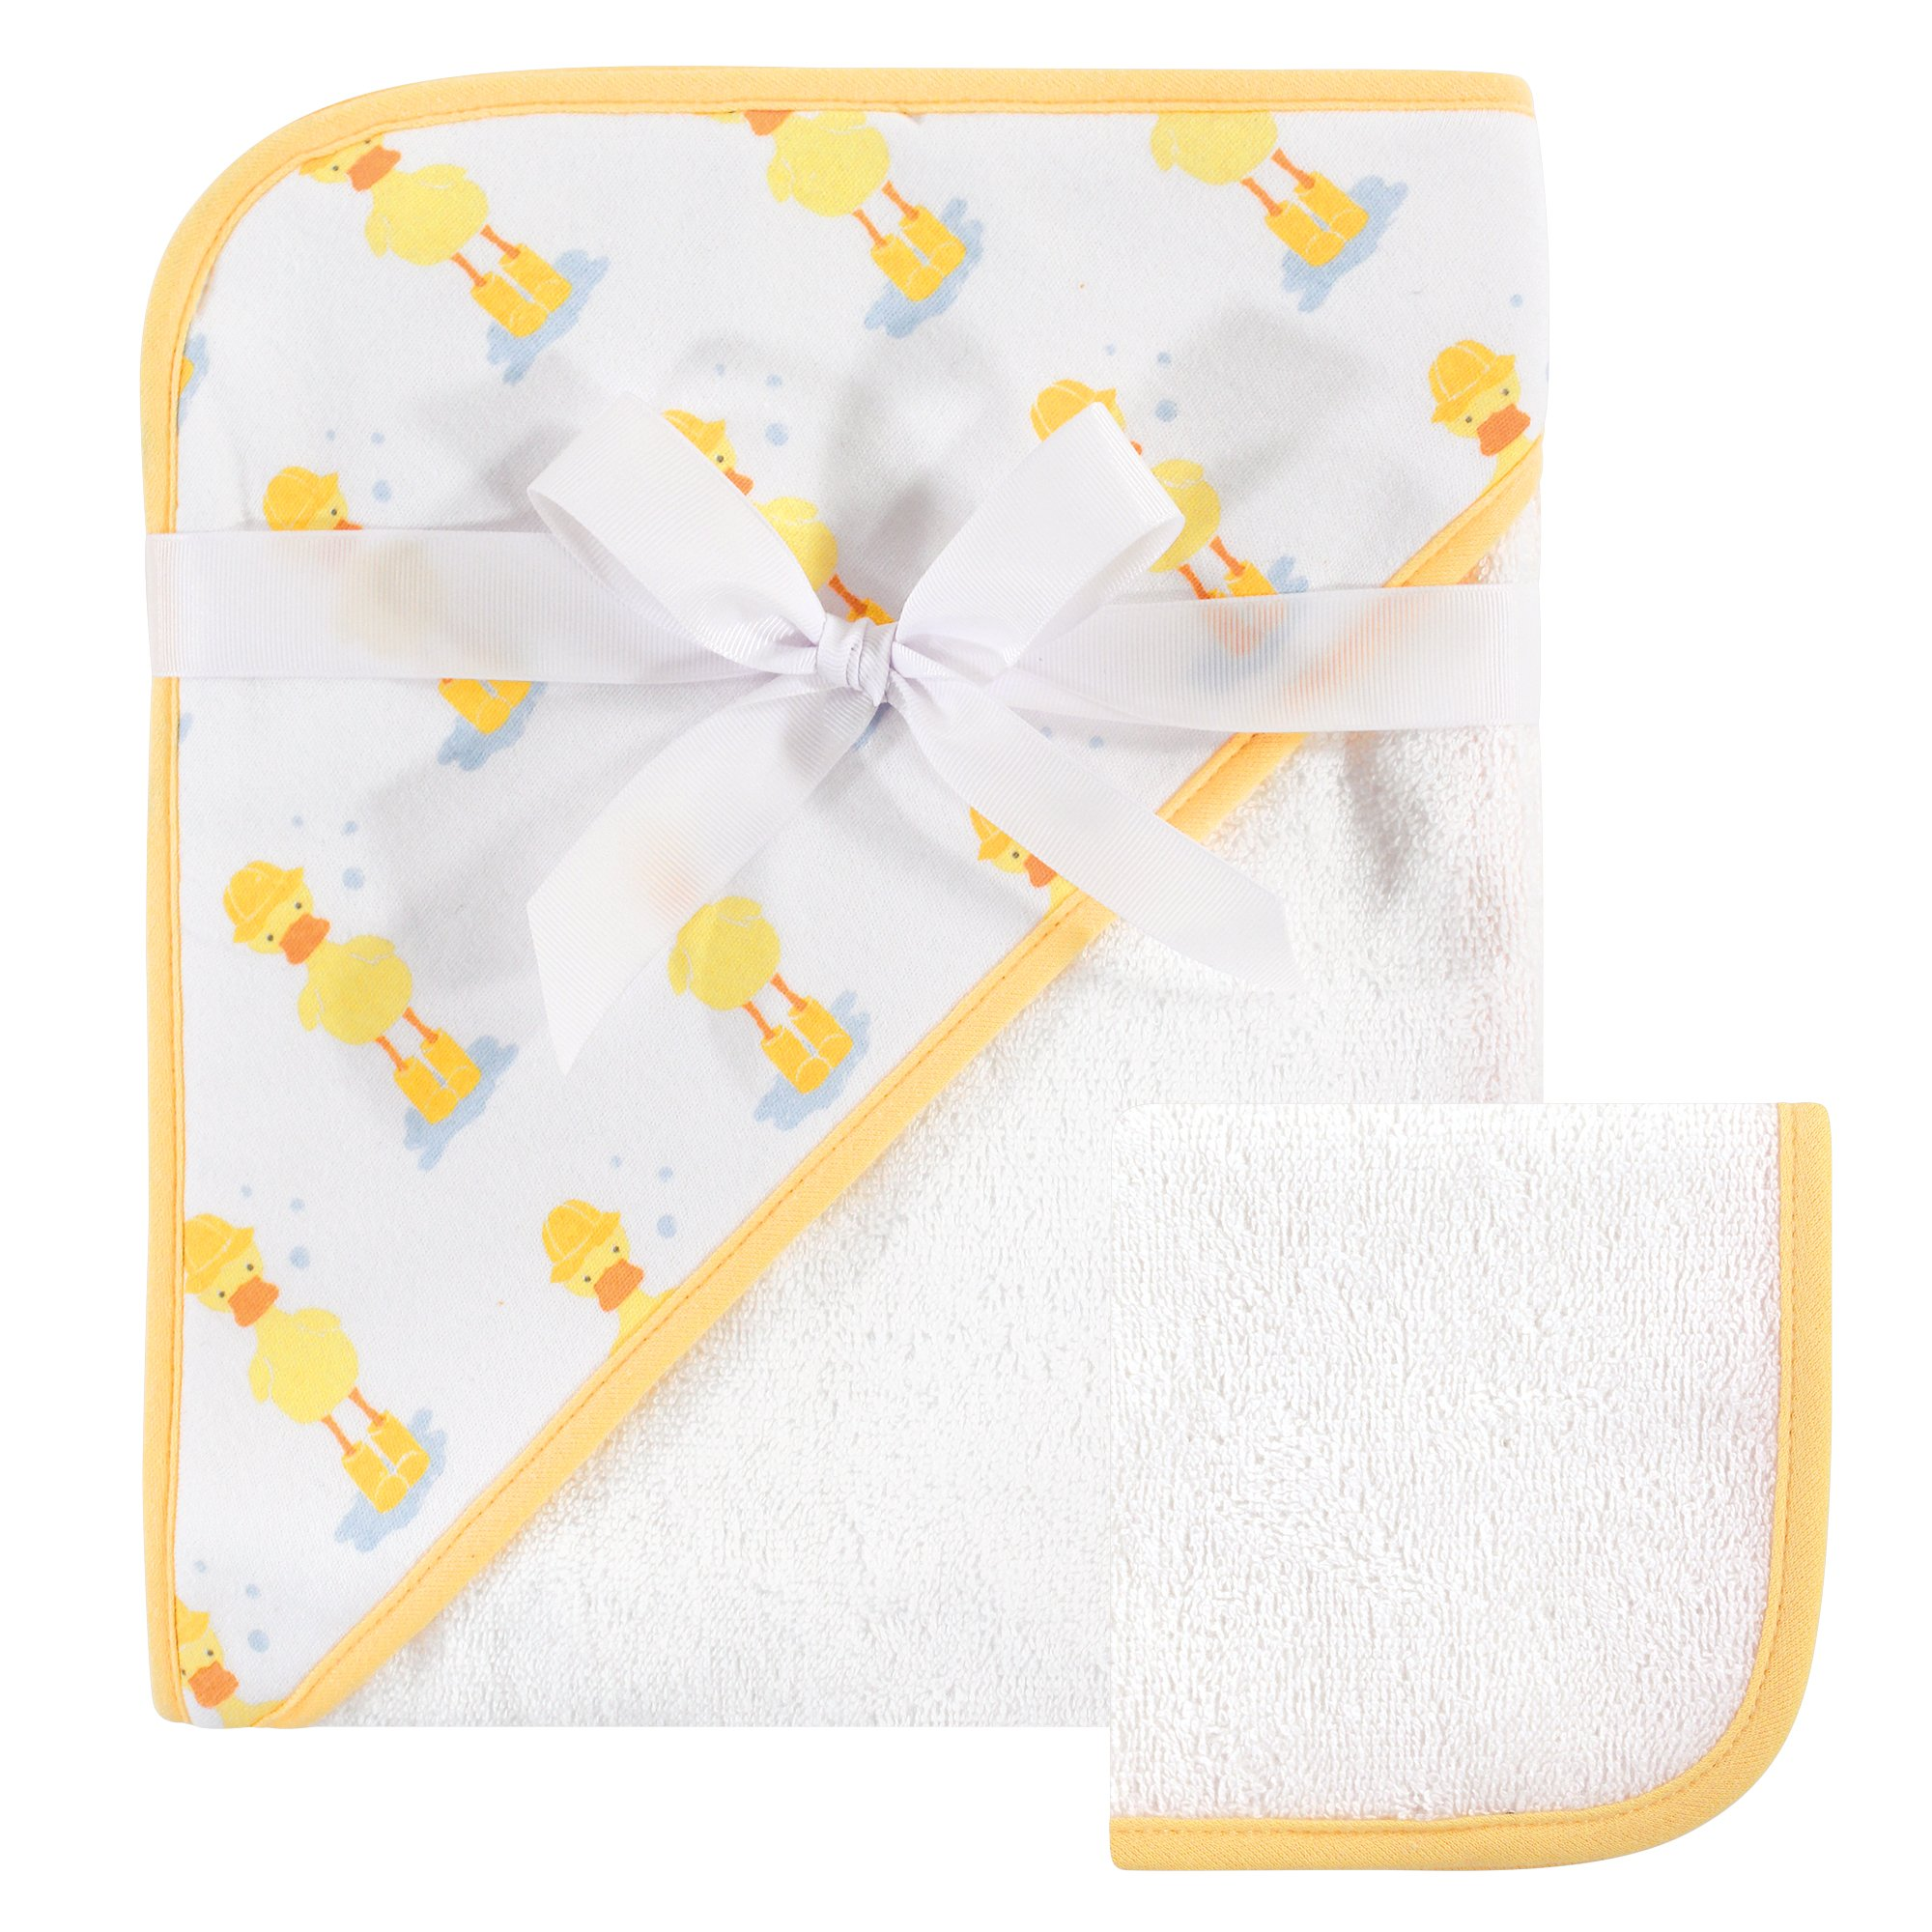 Hudson Baby Unisex Baby Cotton Hooded Towel and Washcloth, Duck, One Size